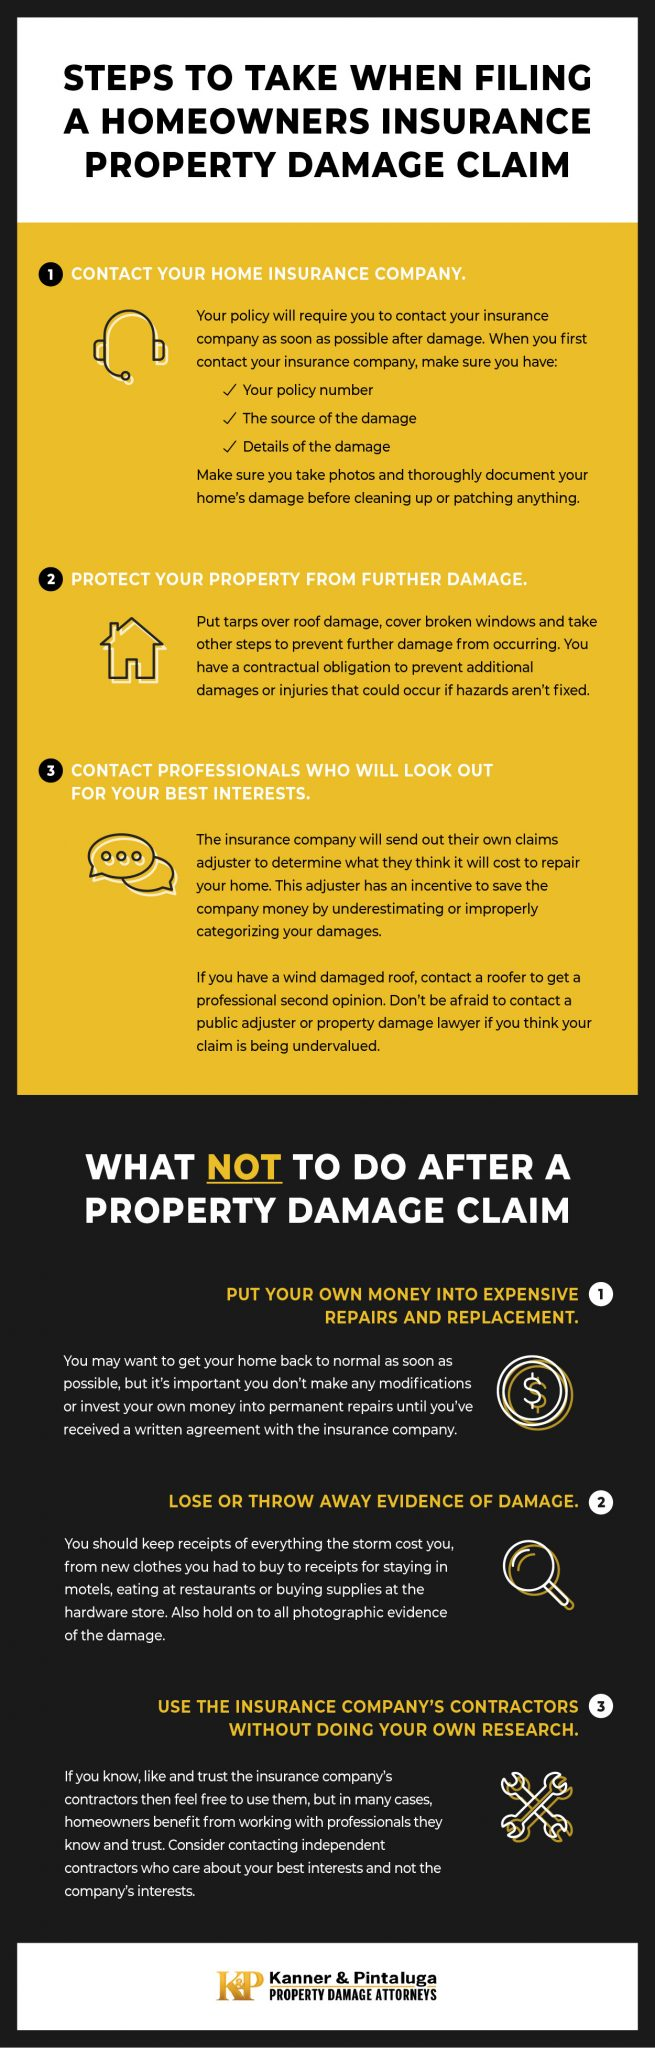 Steps to Take When Filing a Homeowners Insurance Property Damage Claim